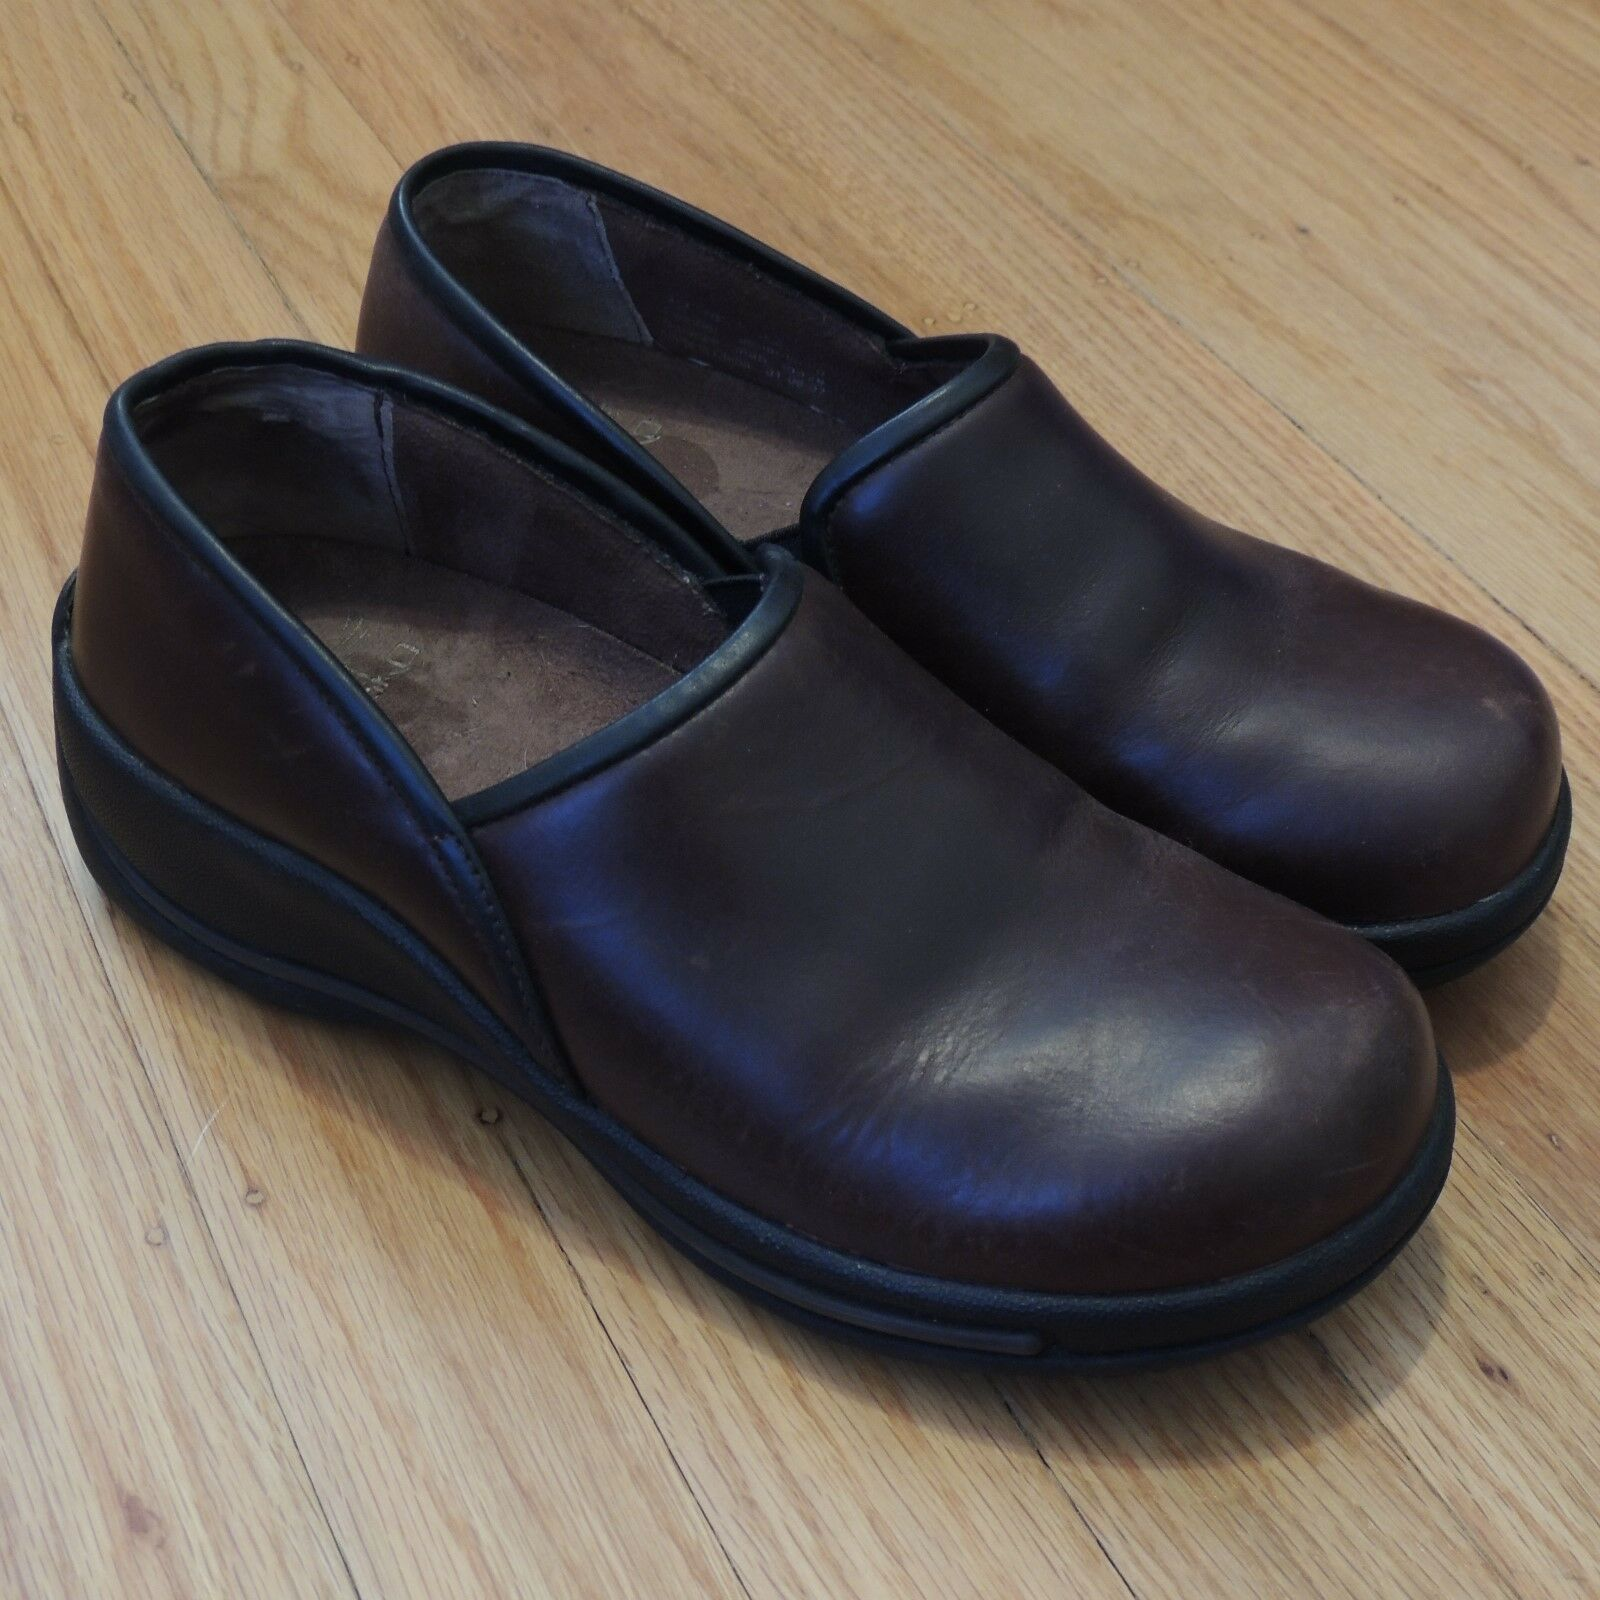 Dansko Slip Resistant Women's Leather shoes Brown Slip on Clogs Size 38